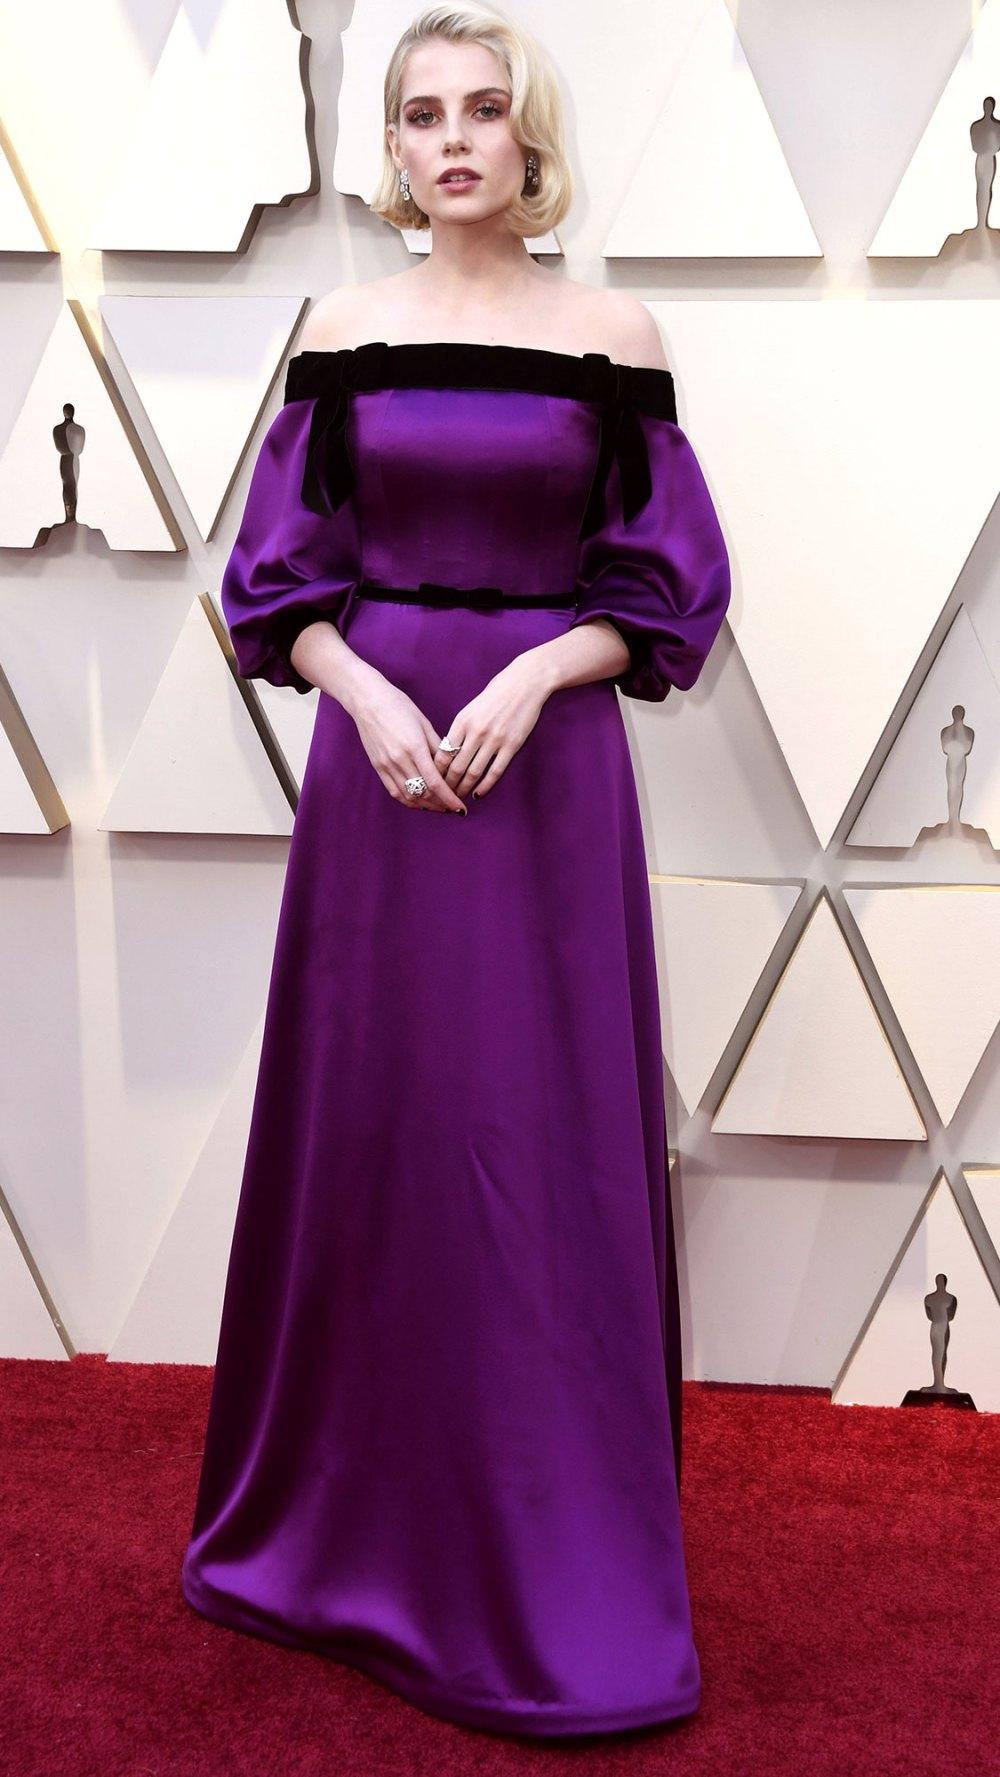 59515e61ba705 Hello Old Hollywood! Va-va-voom! Lucy looks like a frosty starlet in this  rich frock. I love the contrast of warm black velvet and cool purple satin.